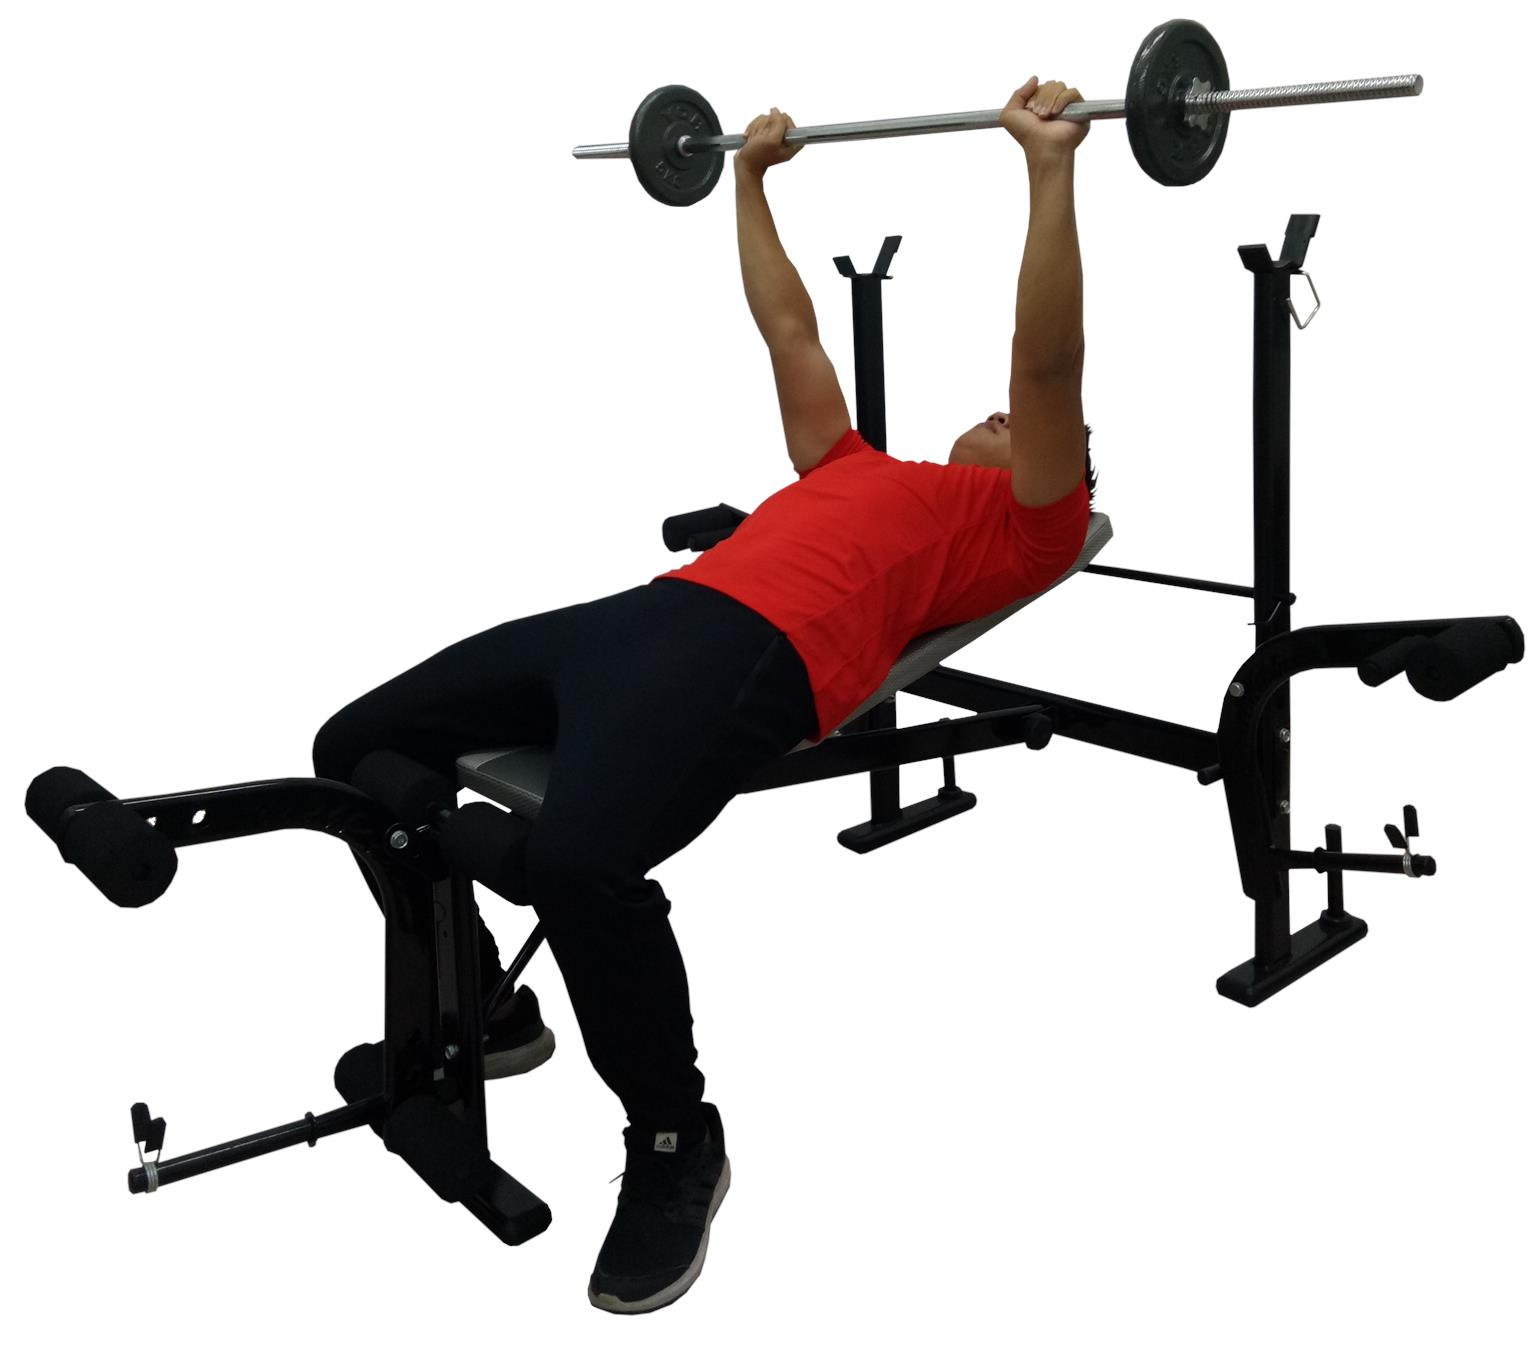 fitness strength marcy benches hei weight p bench sports wid prod deluxe qlt standard exercise bar spin training